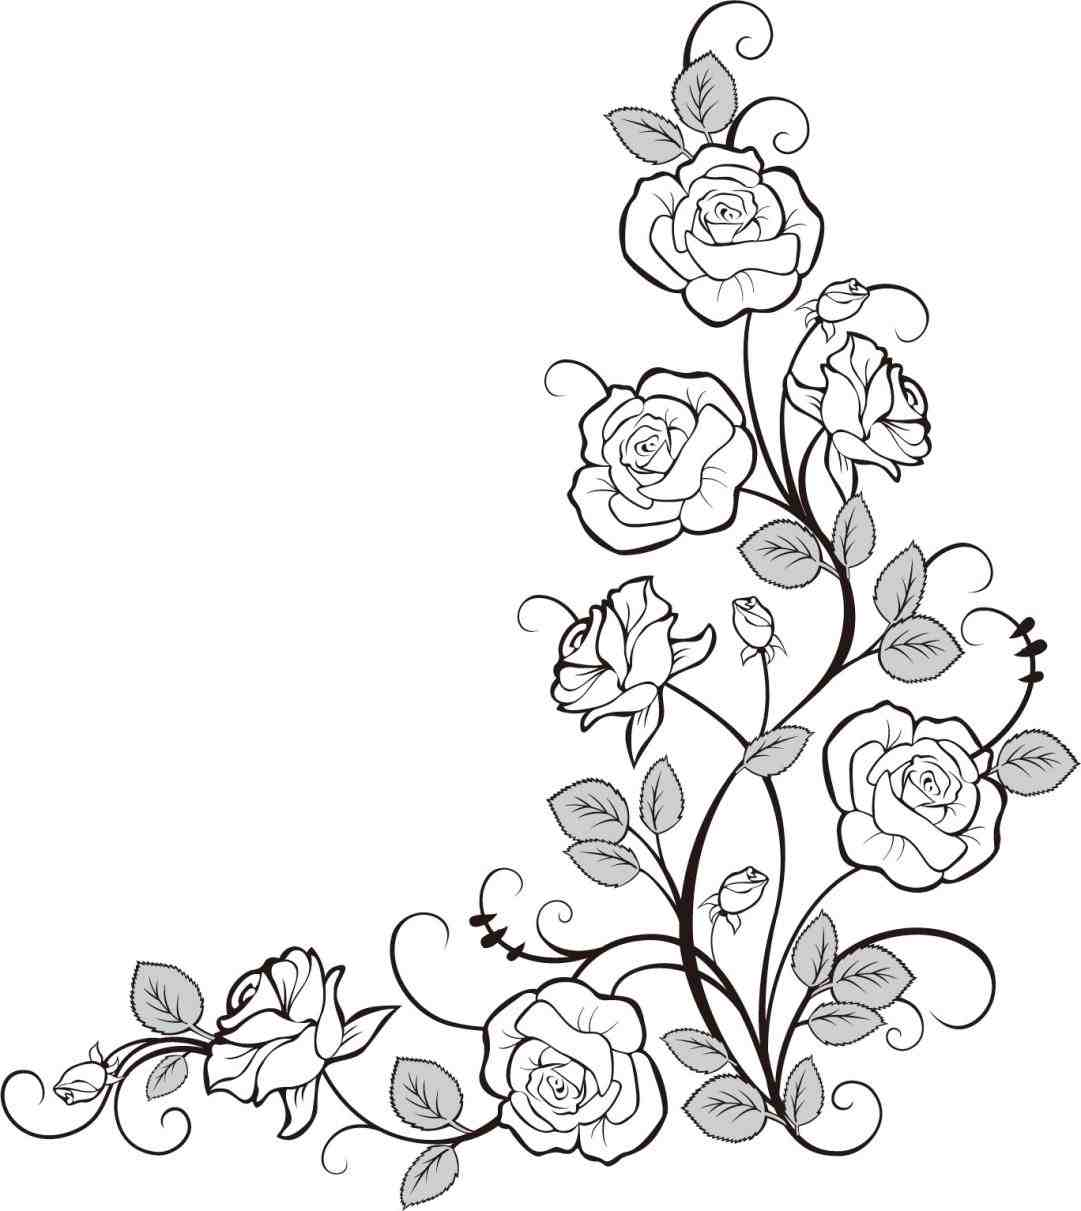 1081x1211 Designs To Draw Of Rosd Vines Hennainspired Design Ideas Leaves